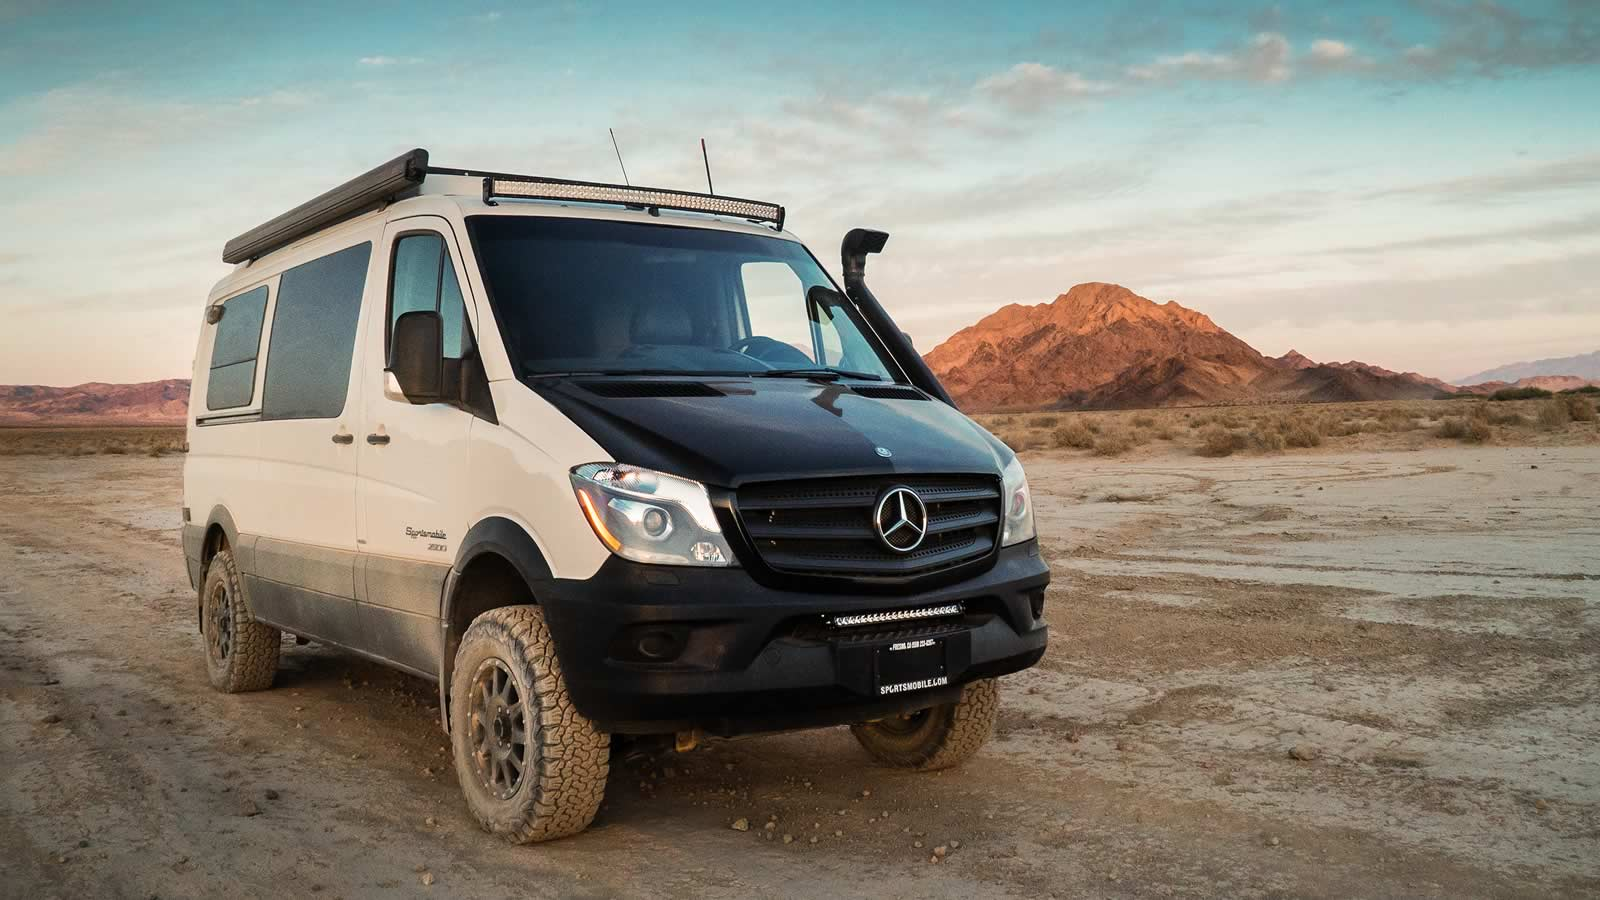 Mercedes Sprinter 4x4 Van